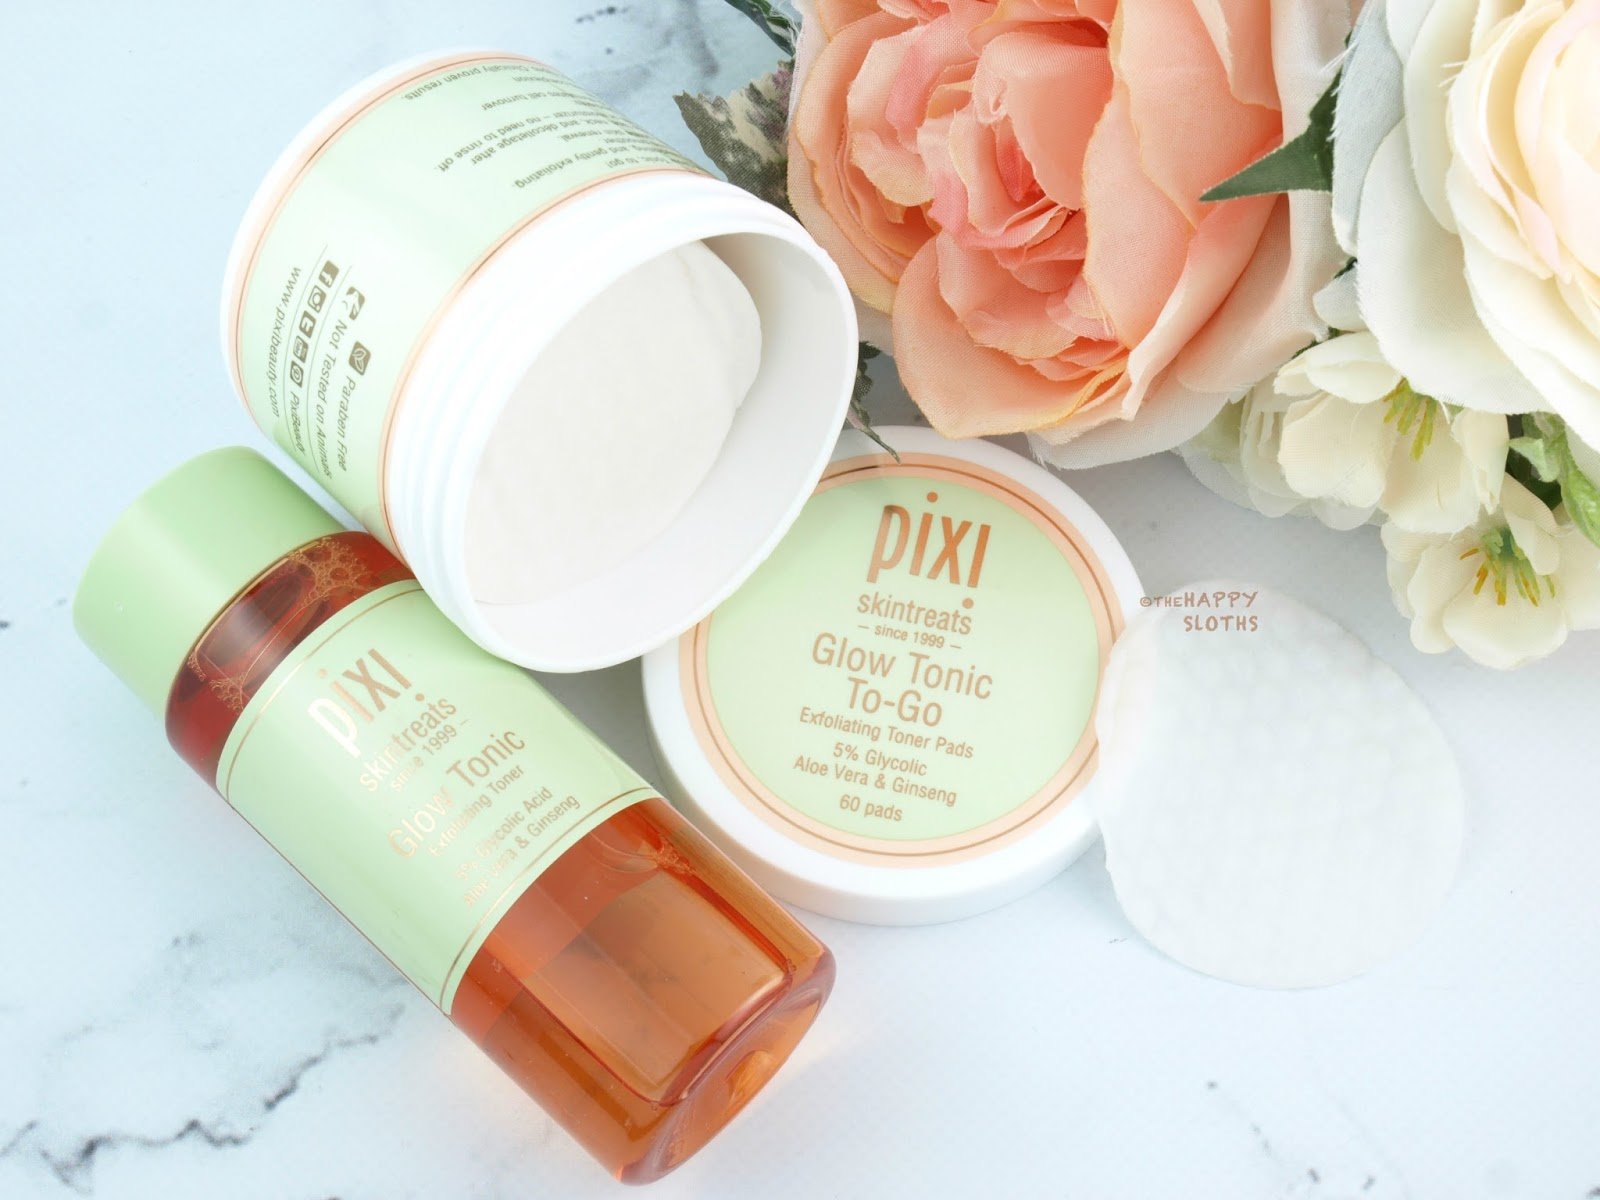 Pixi Glow Tonic & Glow Tonic To-Go: Review